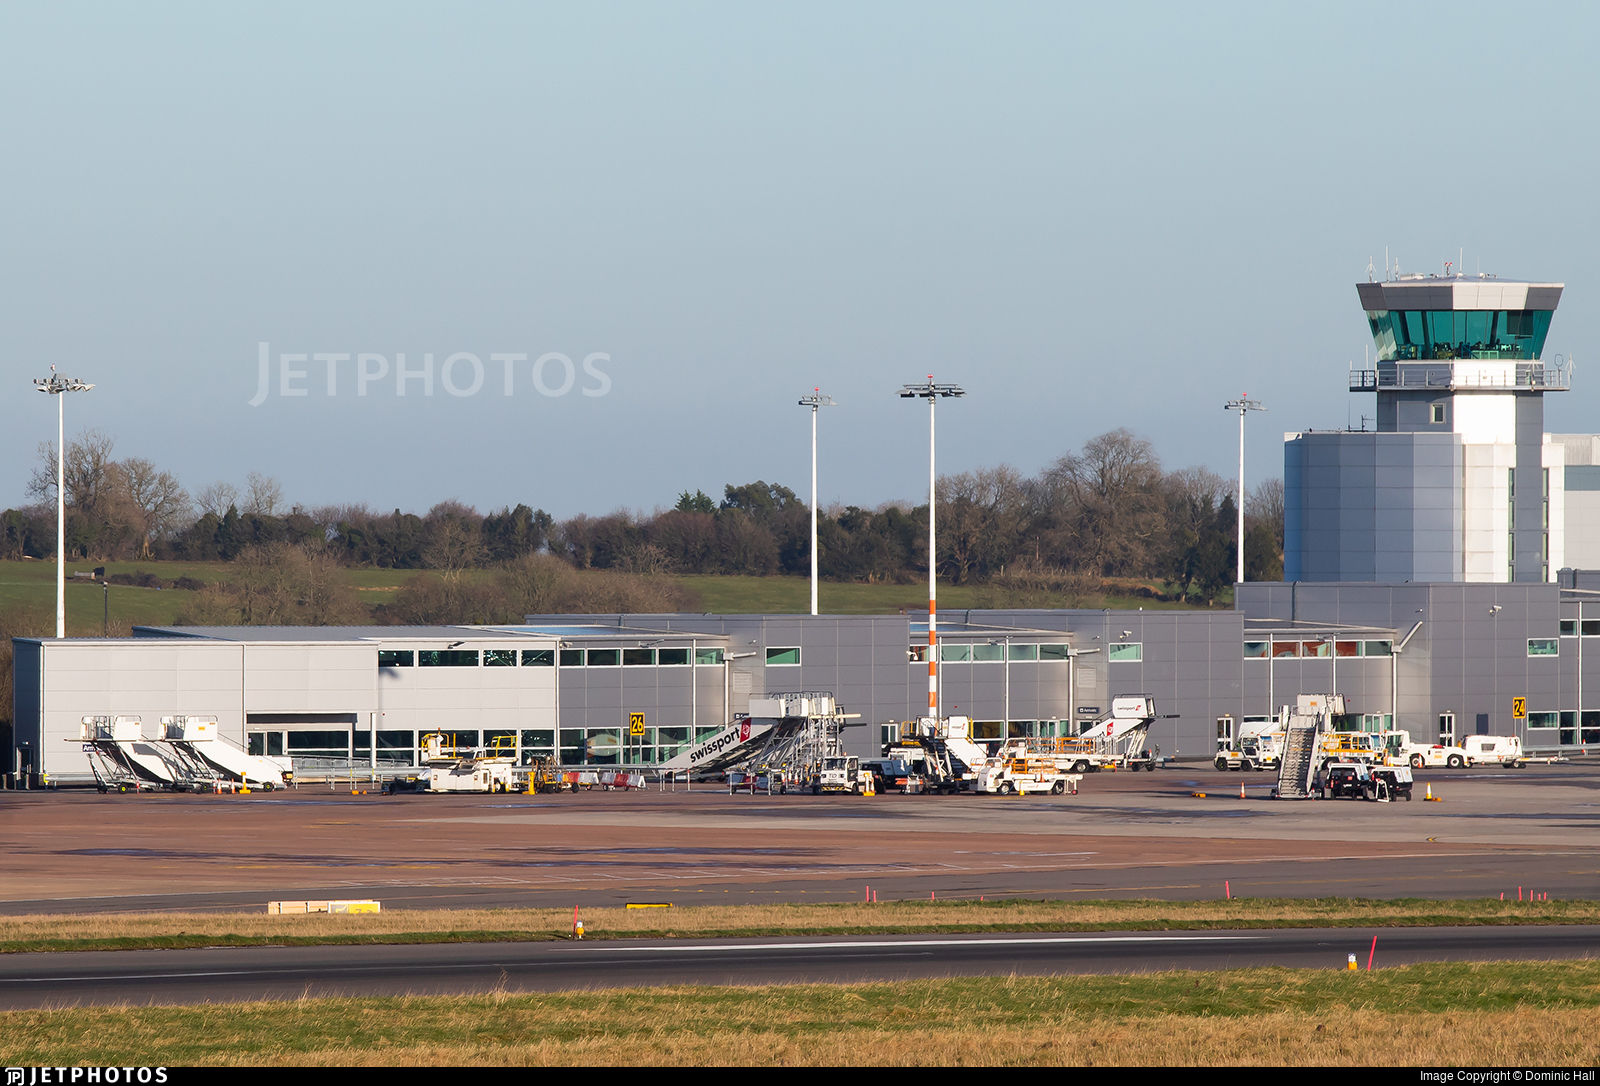 EGGD - Airport - Airport Overview